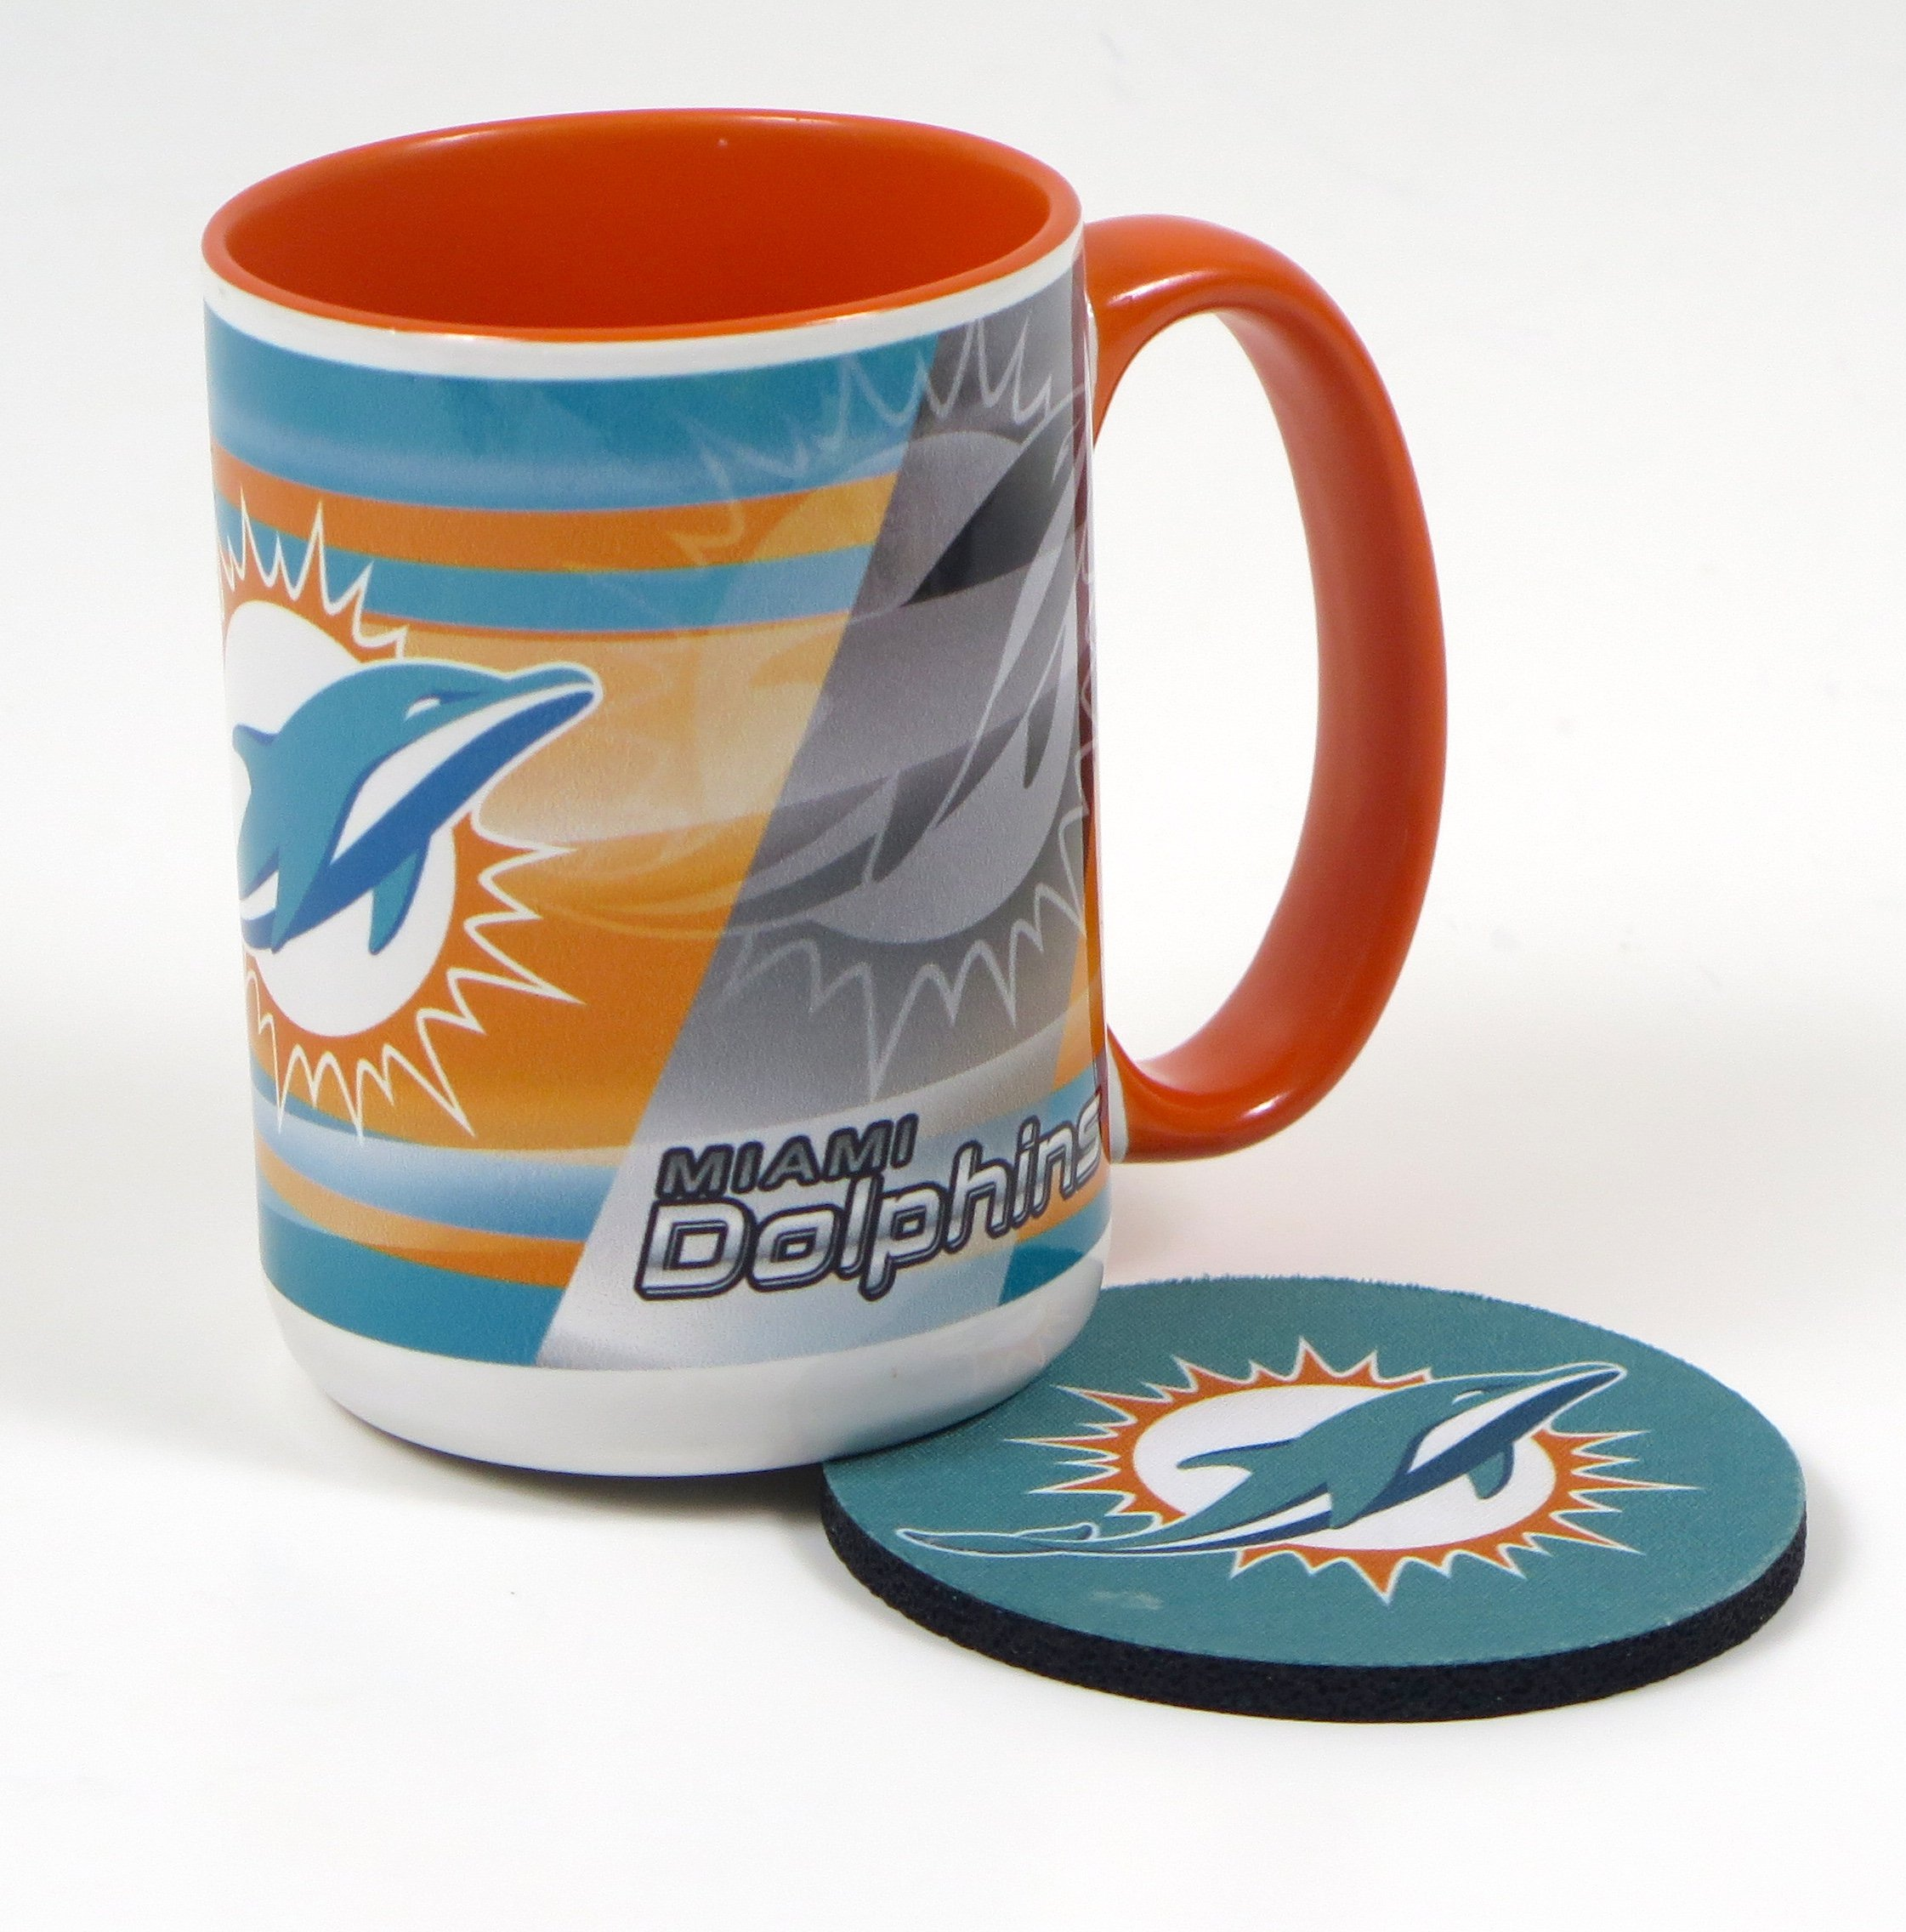 Miami Dolphins Work Station Computer Set. Includes Large Coffee Mug, Neoprene Mouse pad and Coaster, Retractable Pen and a 1000 Sheet Notepad Cube. 5 Peace Set by T (Image #3)